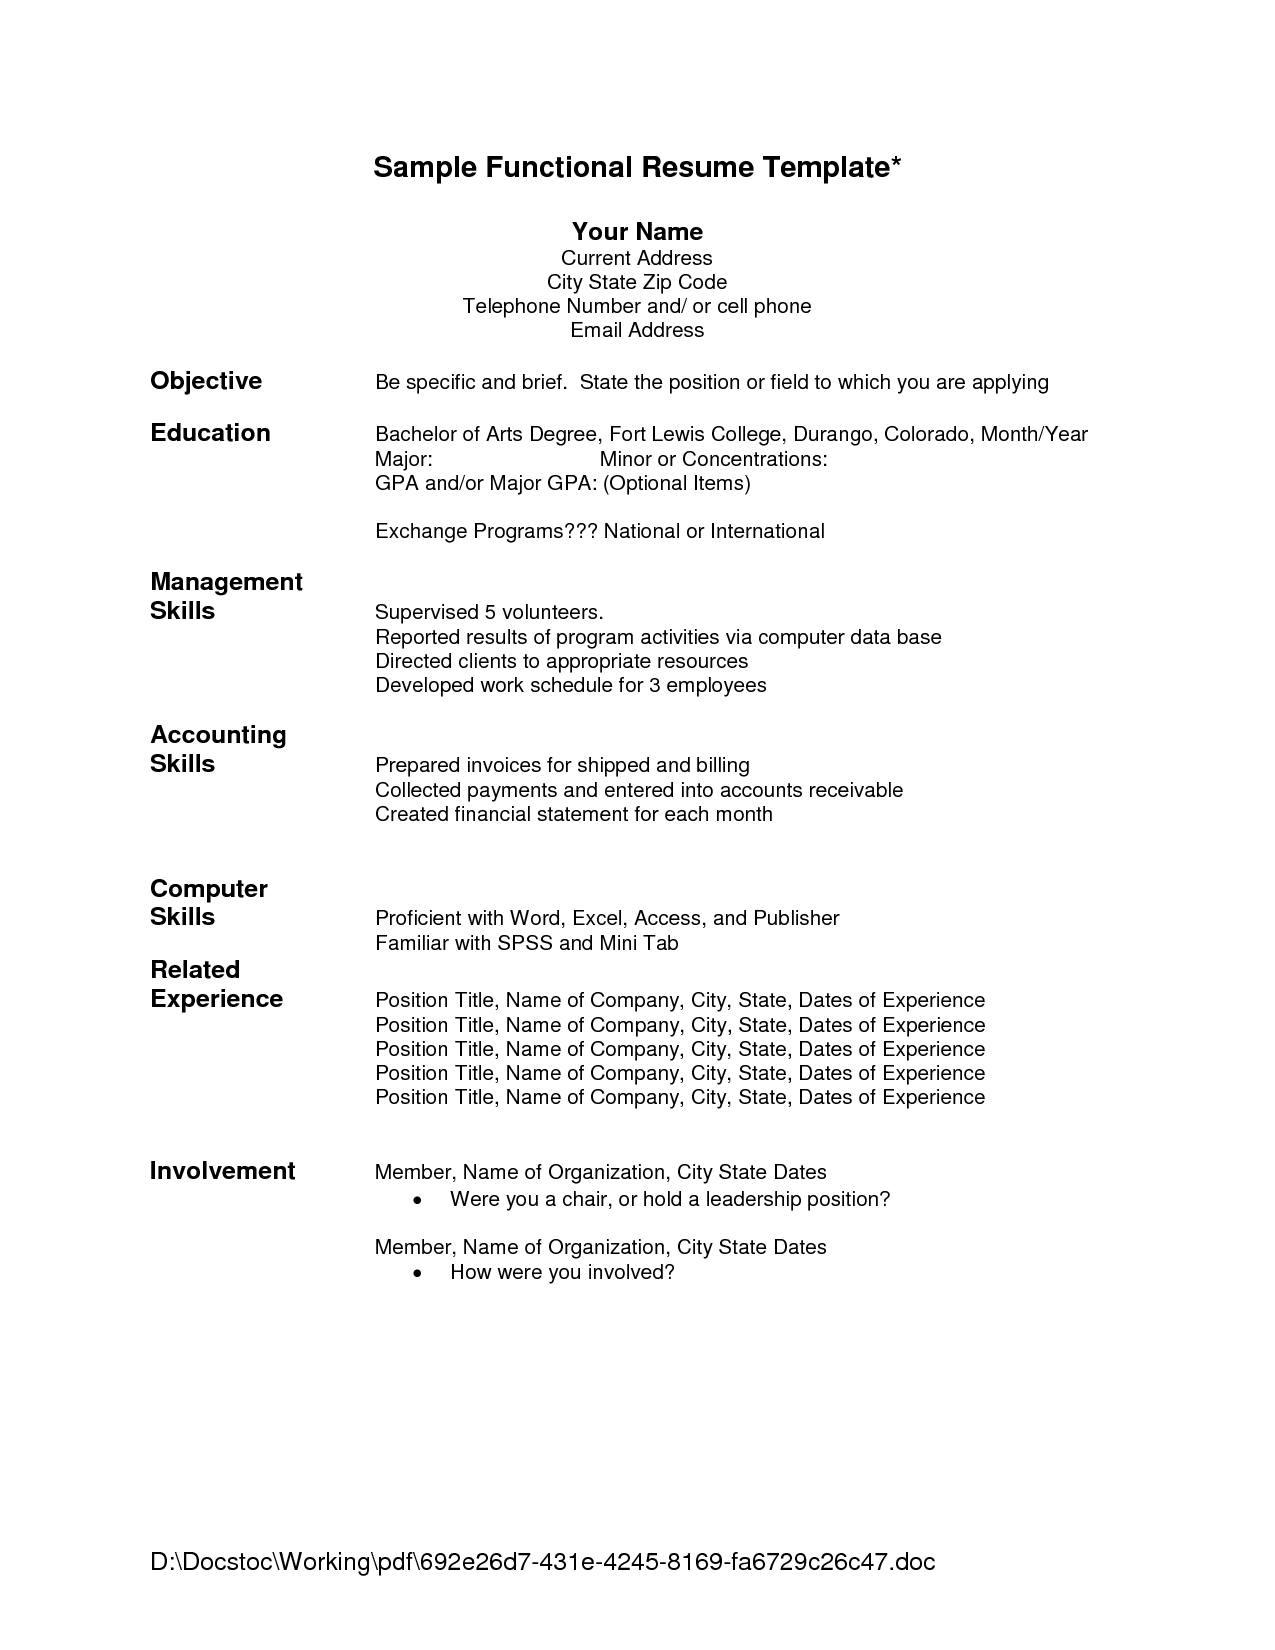 Functional Resume Template Sample One Page Functional Resume  Google Search  Resumes